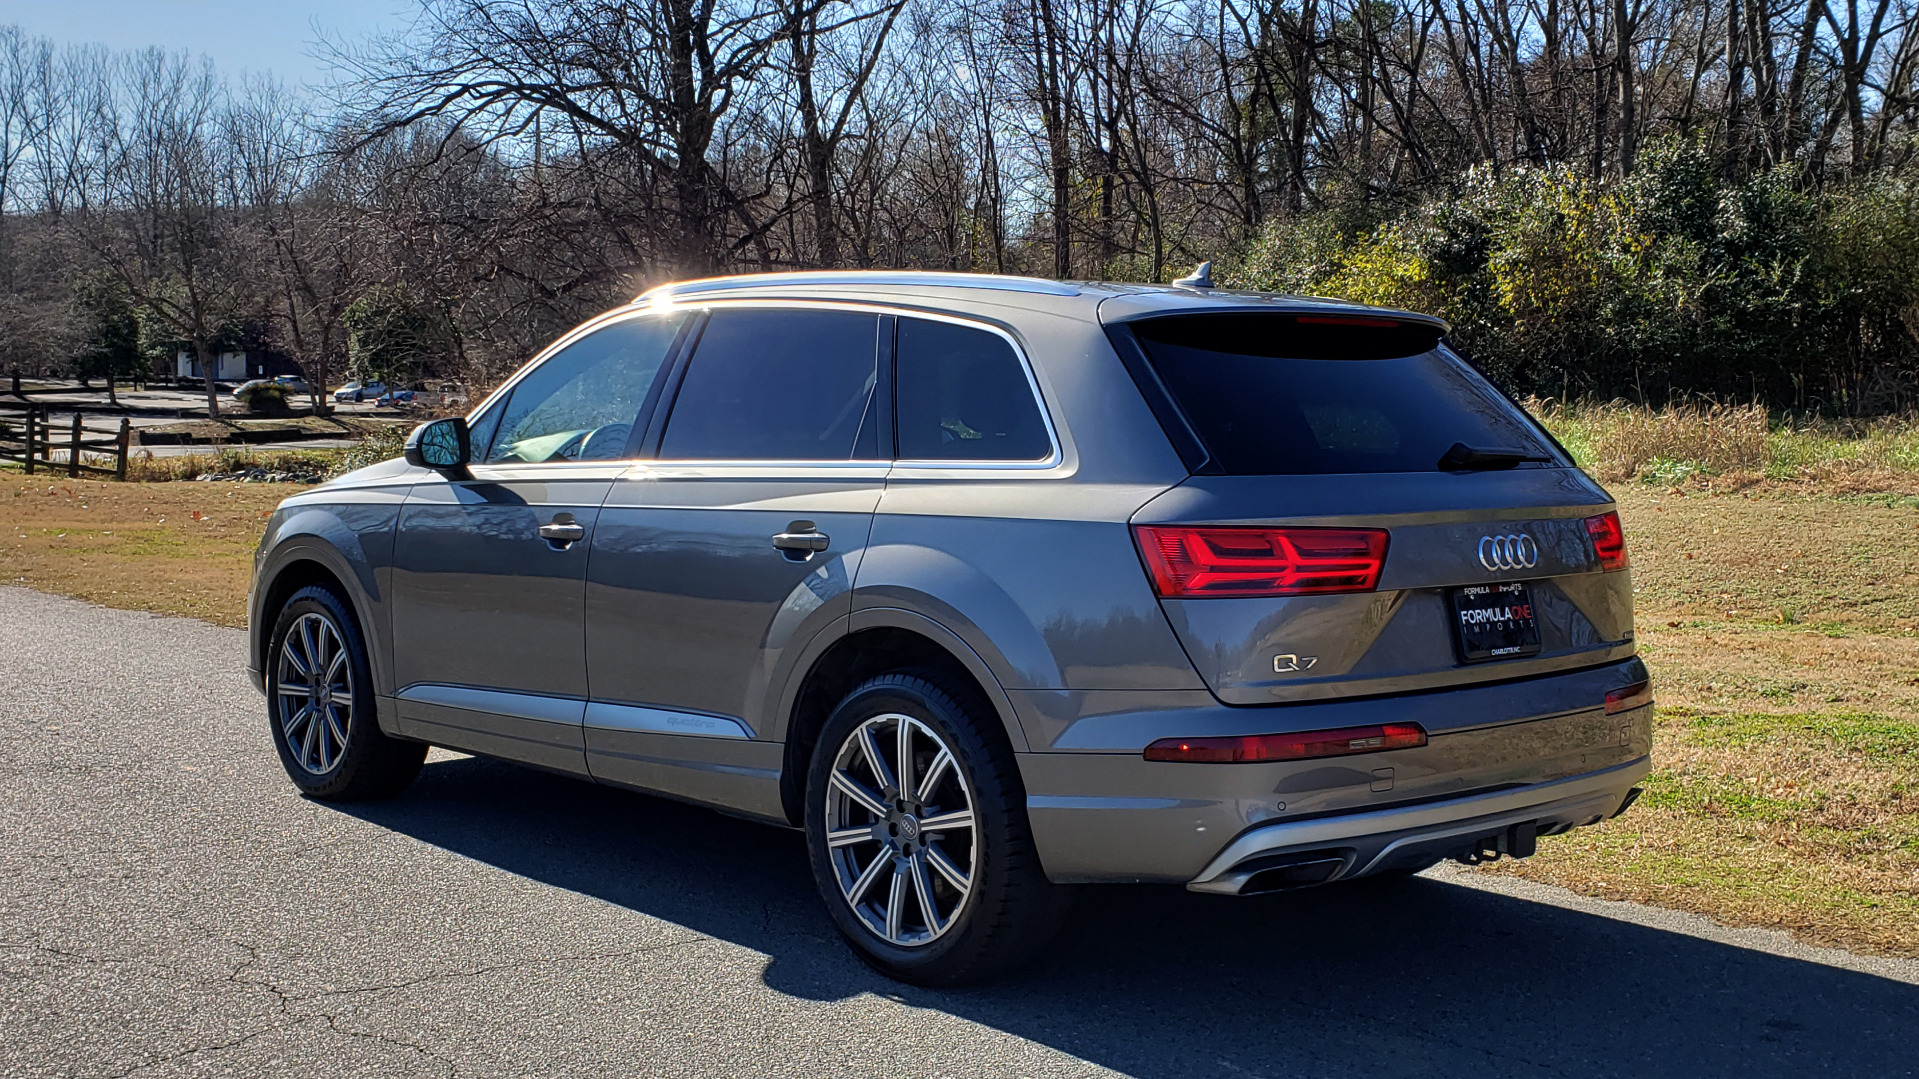 Used 2017 Audi Q7 PREMIUM PLUS / 2.0T TIPTRONIC / NAV / PANO-ROOF / 3-ROW / REARVIEW for sale $33,999 at Formula Imports in Charlotte NC 28227 3